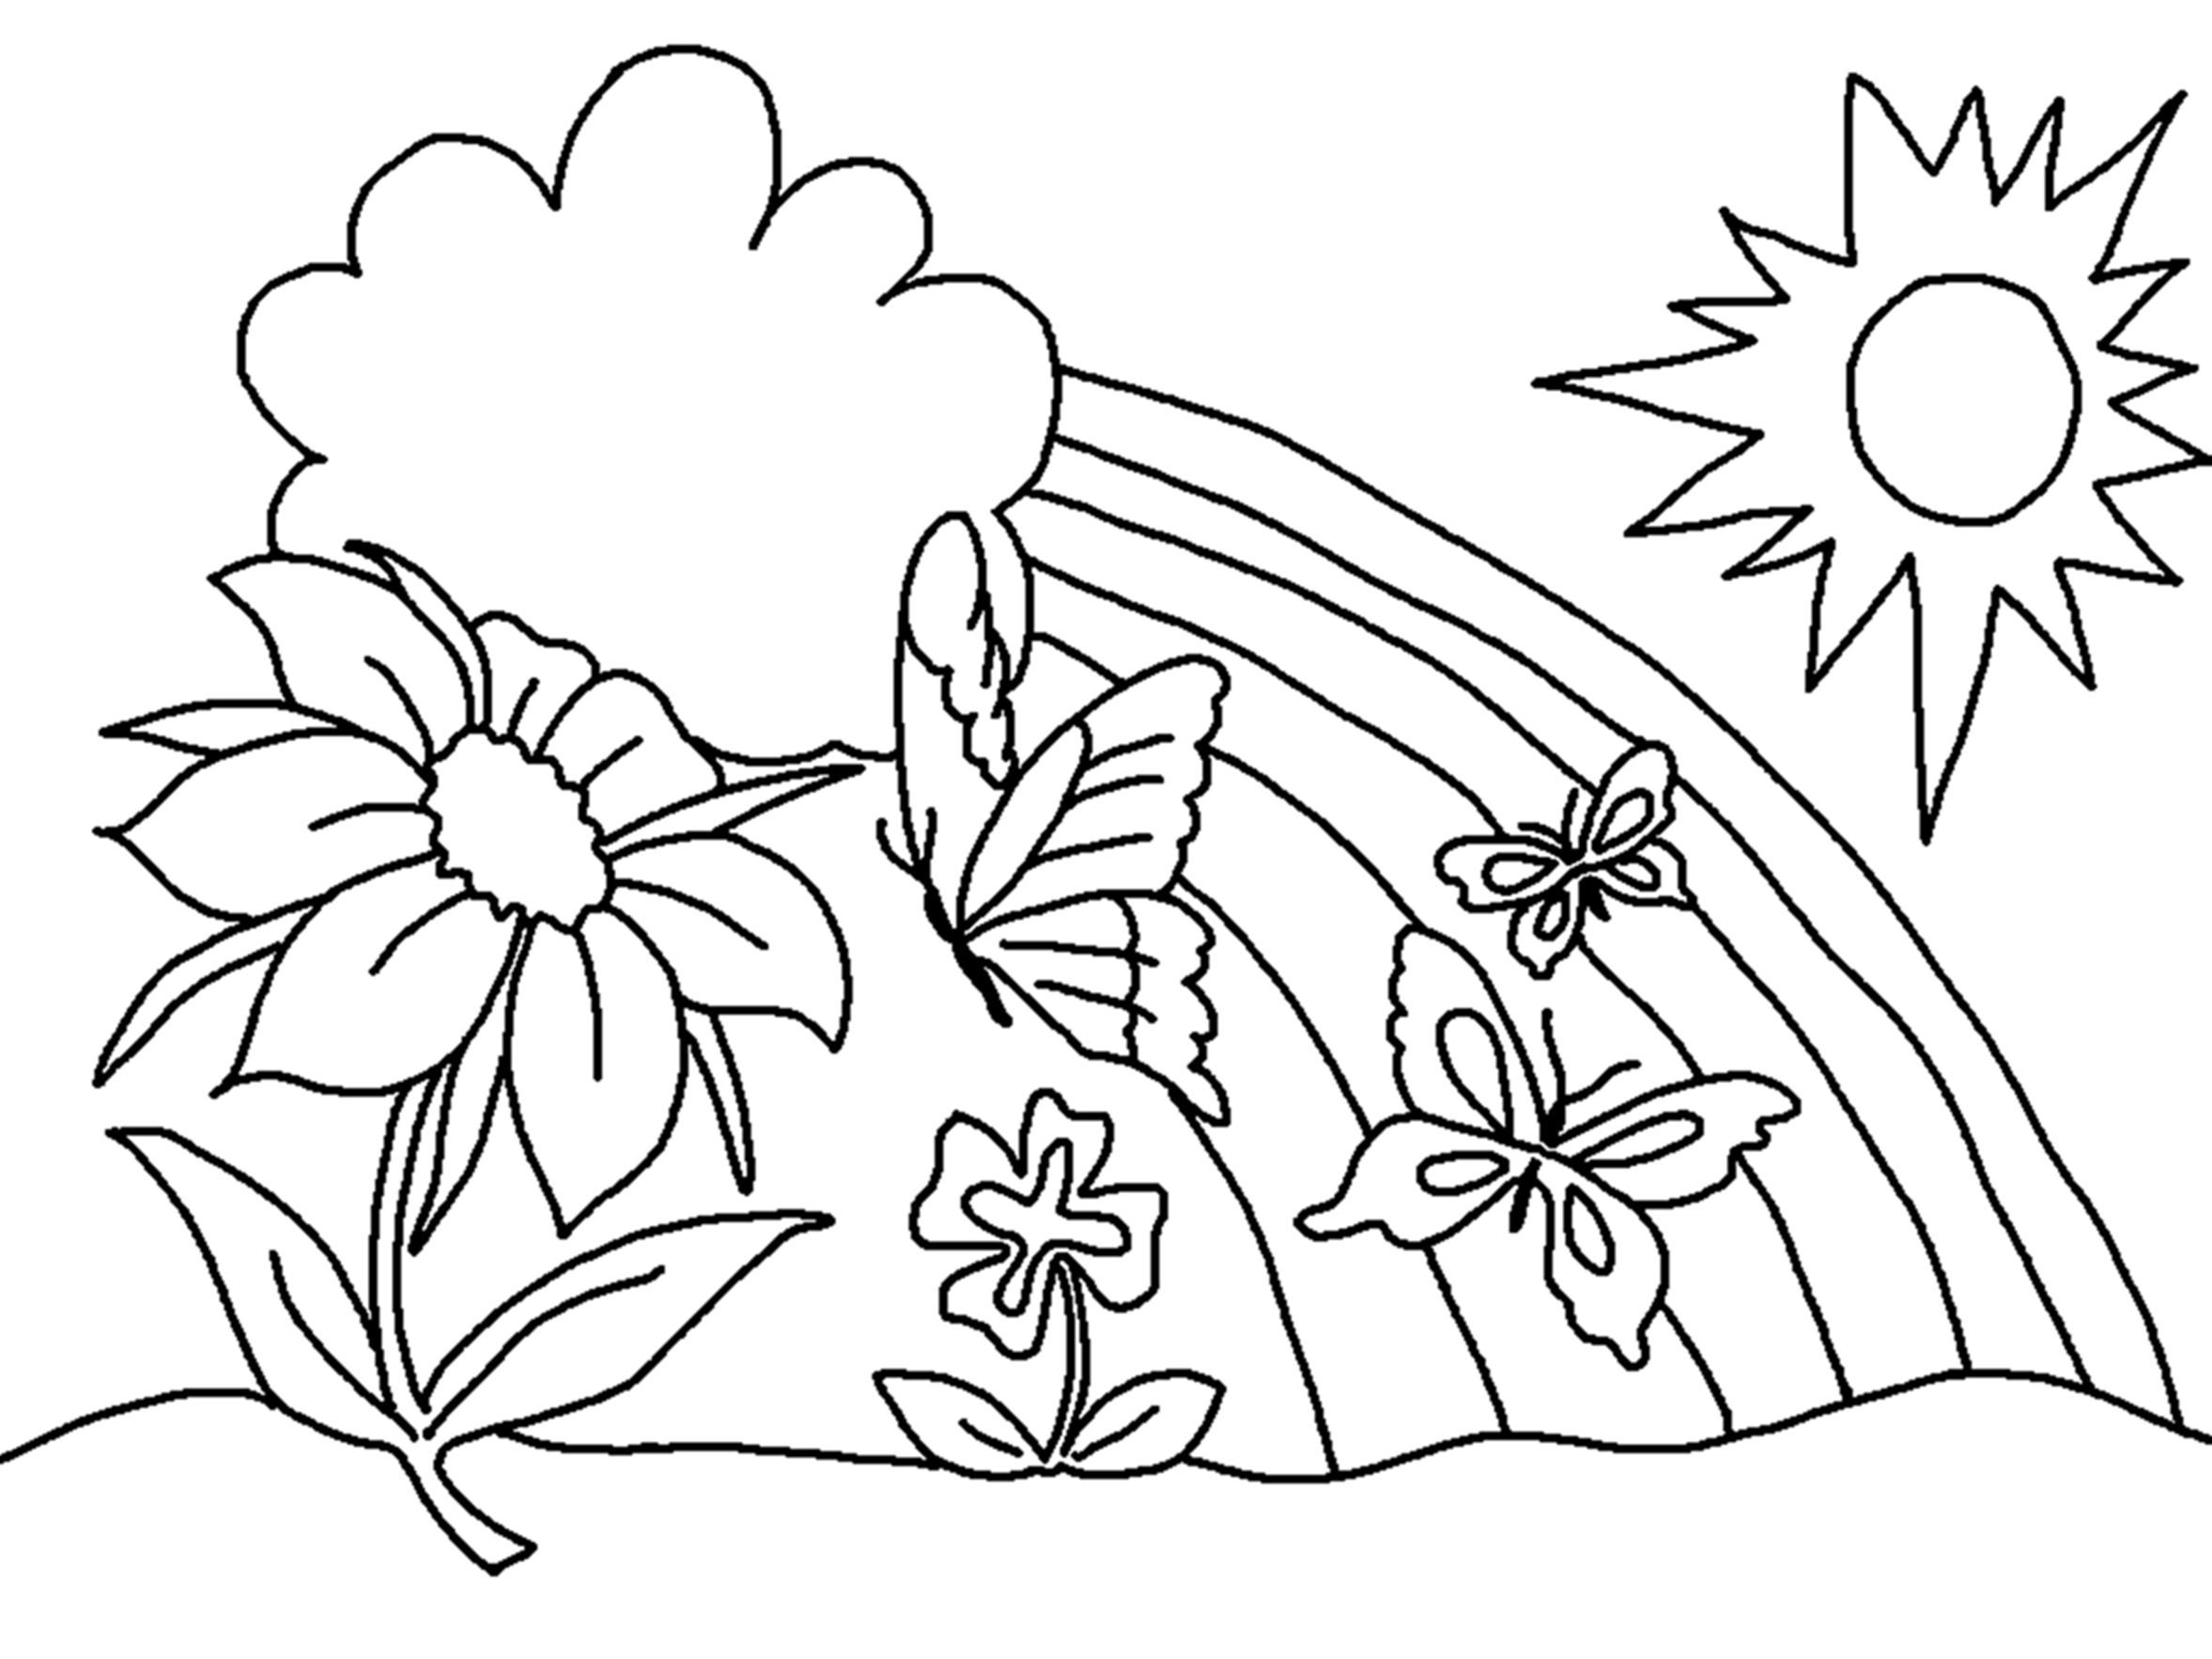 Coloring Pages Printables Free Printable Flower Coloring Pages For Kids  Best Coloring .